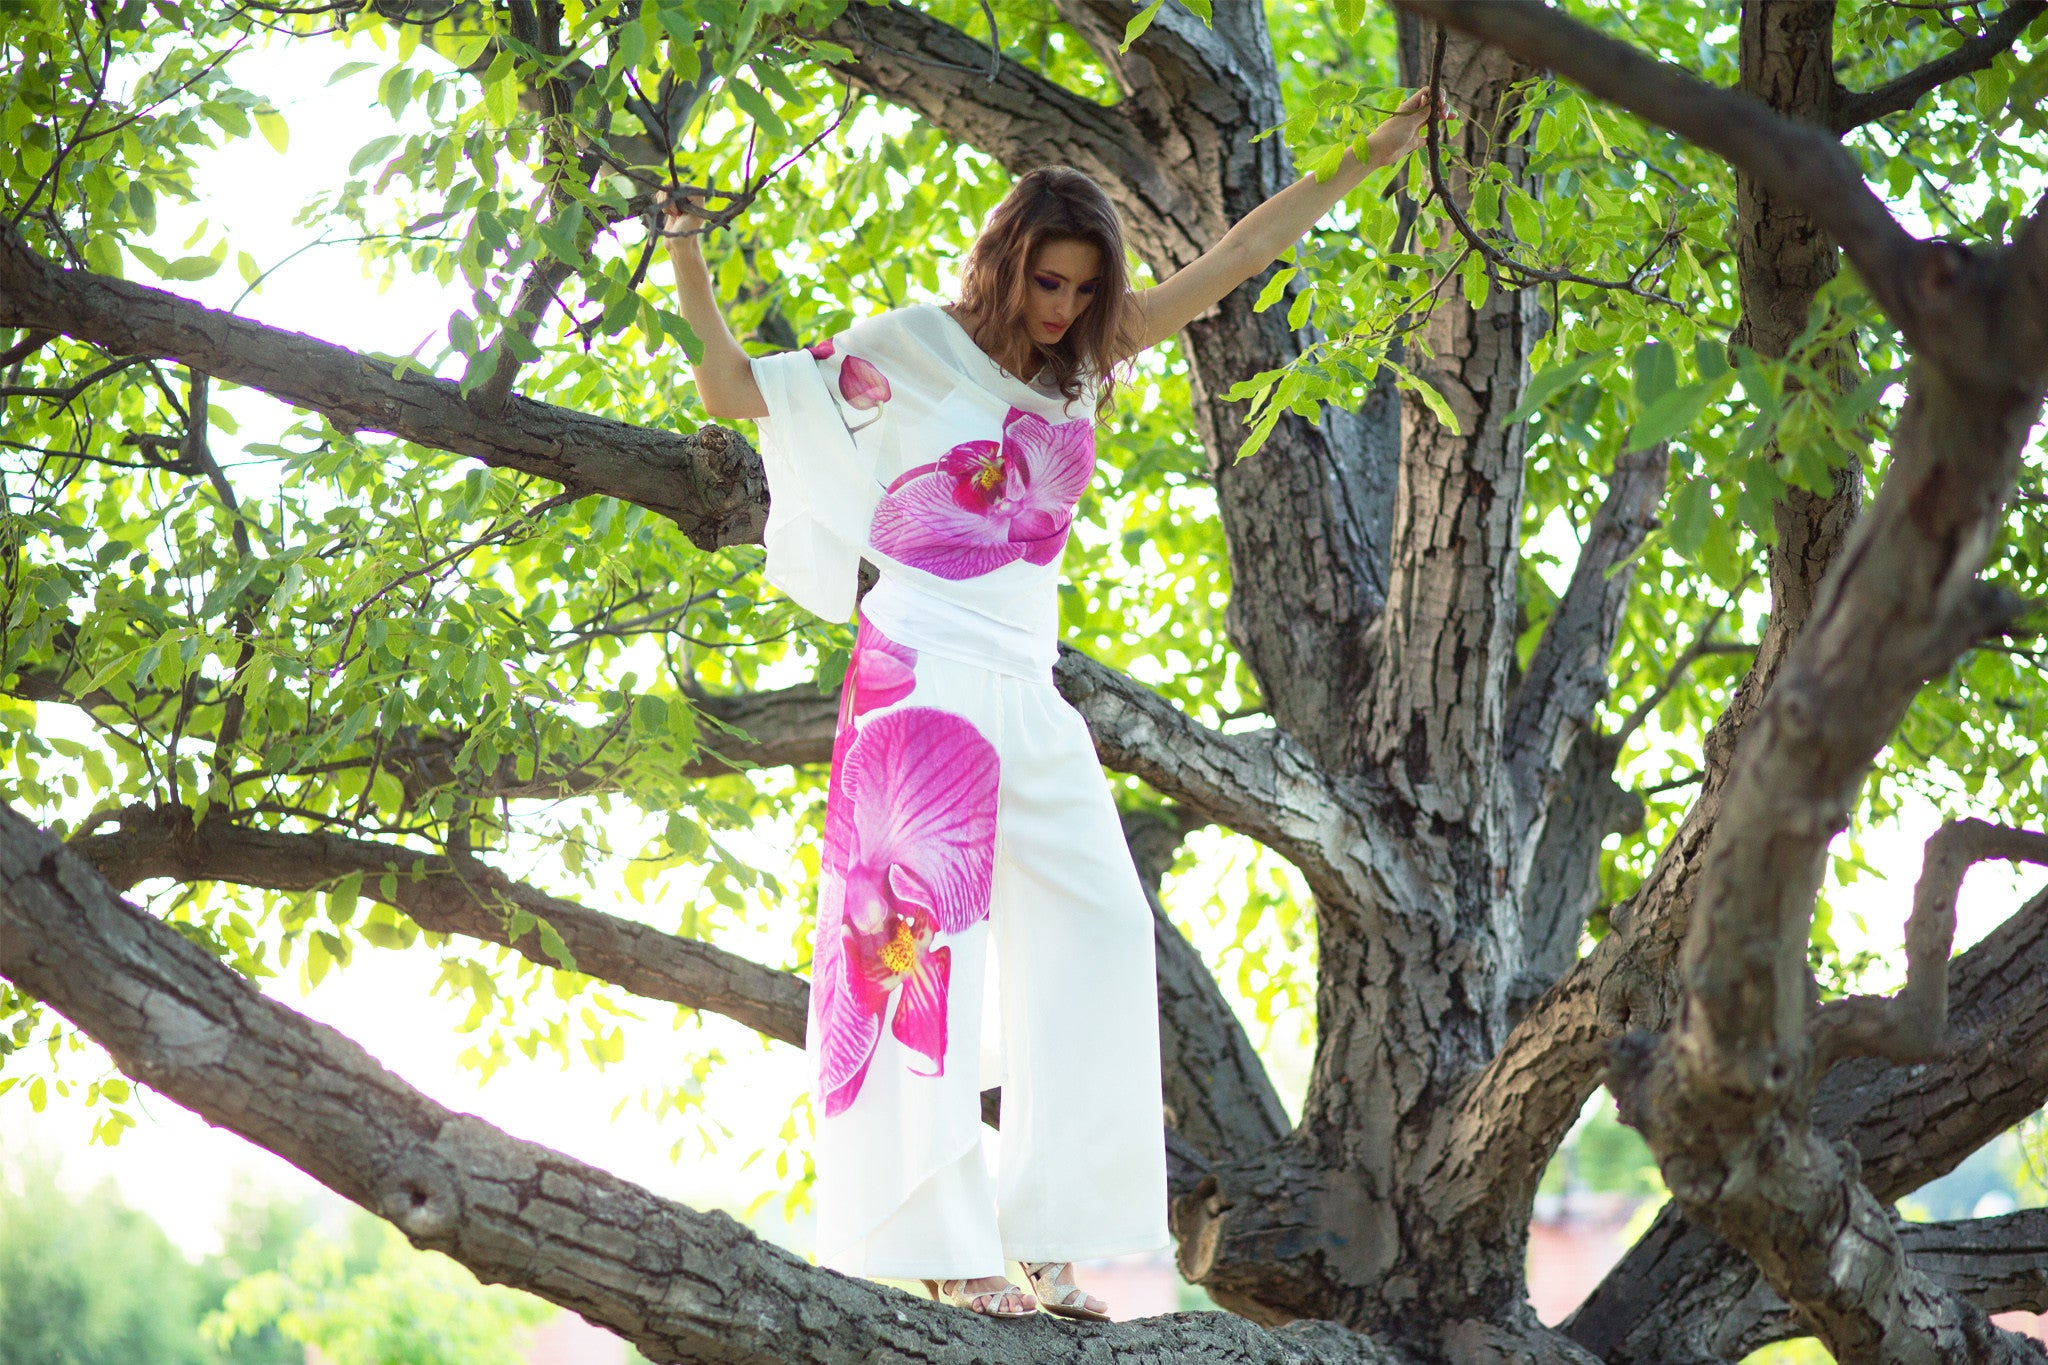 kites and bites shooting day, model, photographer, garden, flowers, orchid, tree clothes, photo, laugh